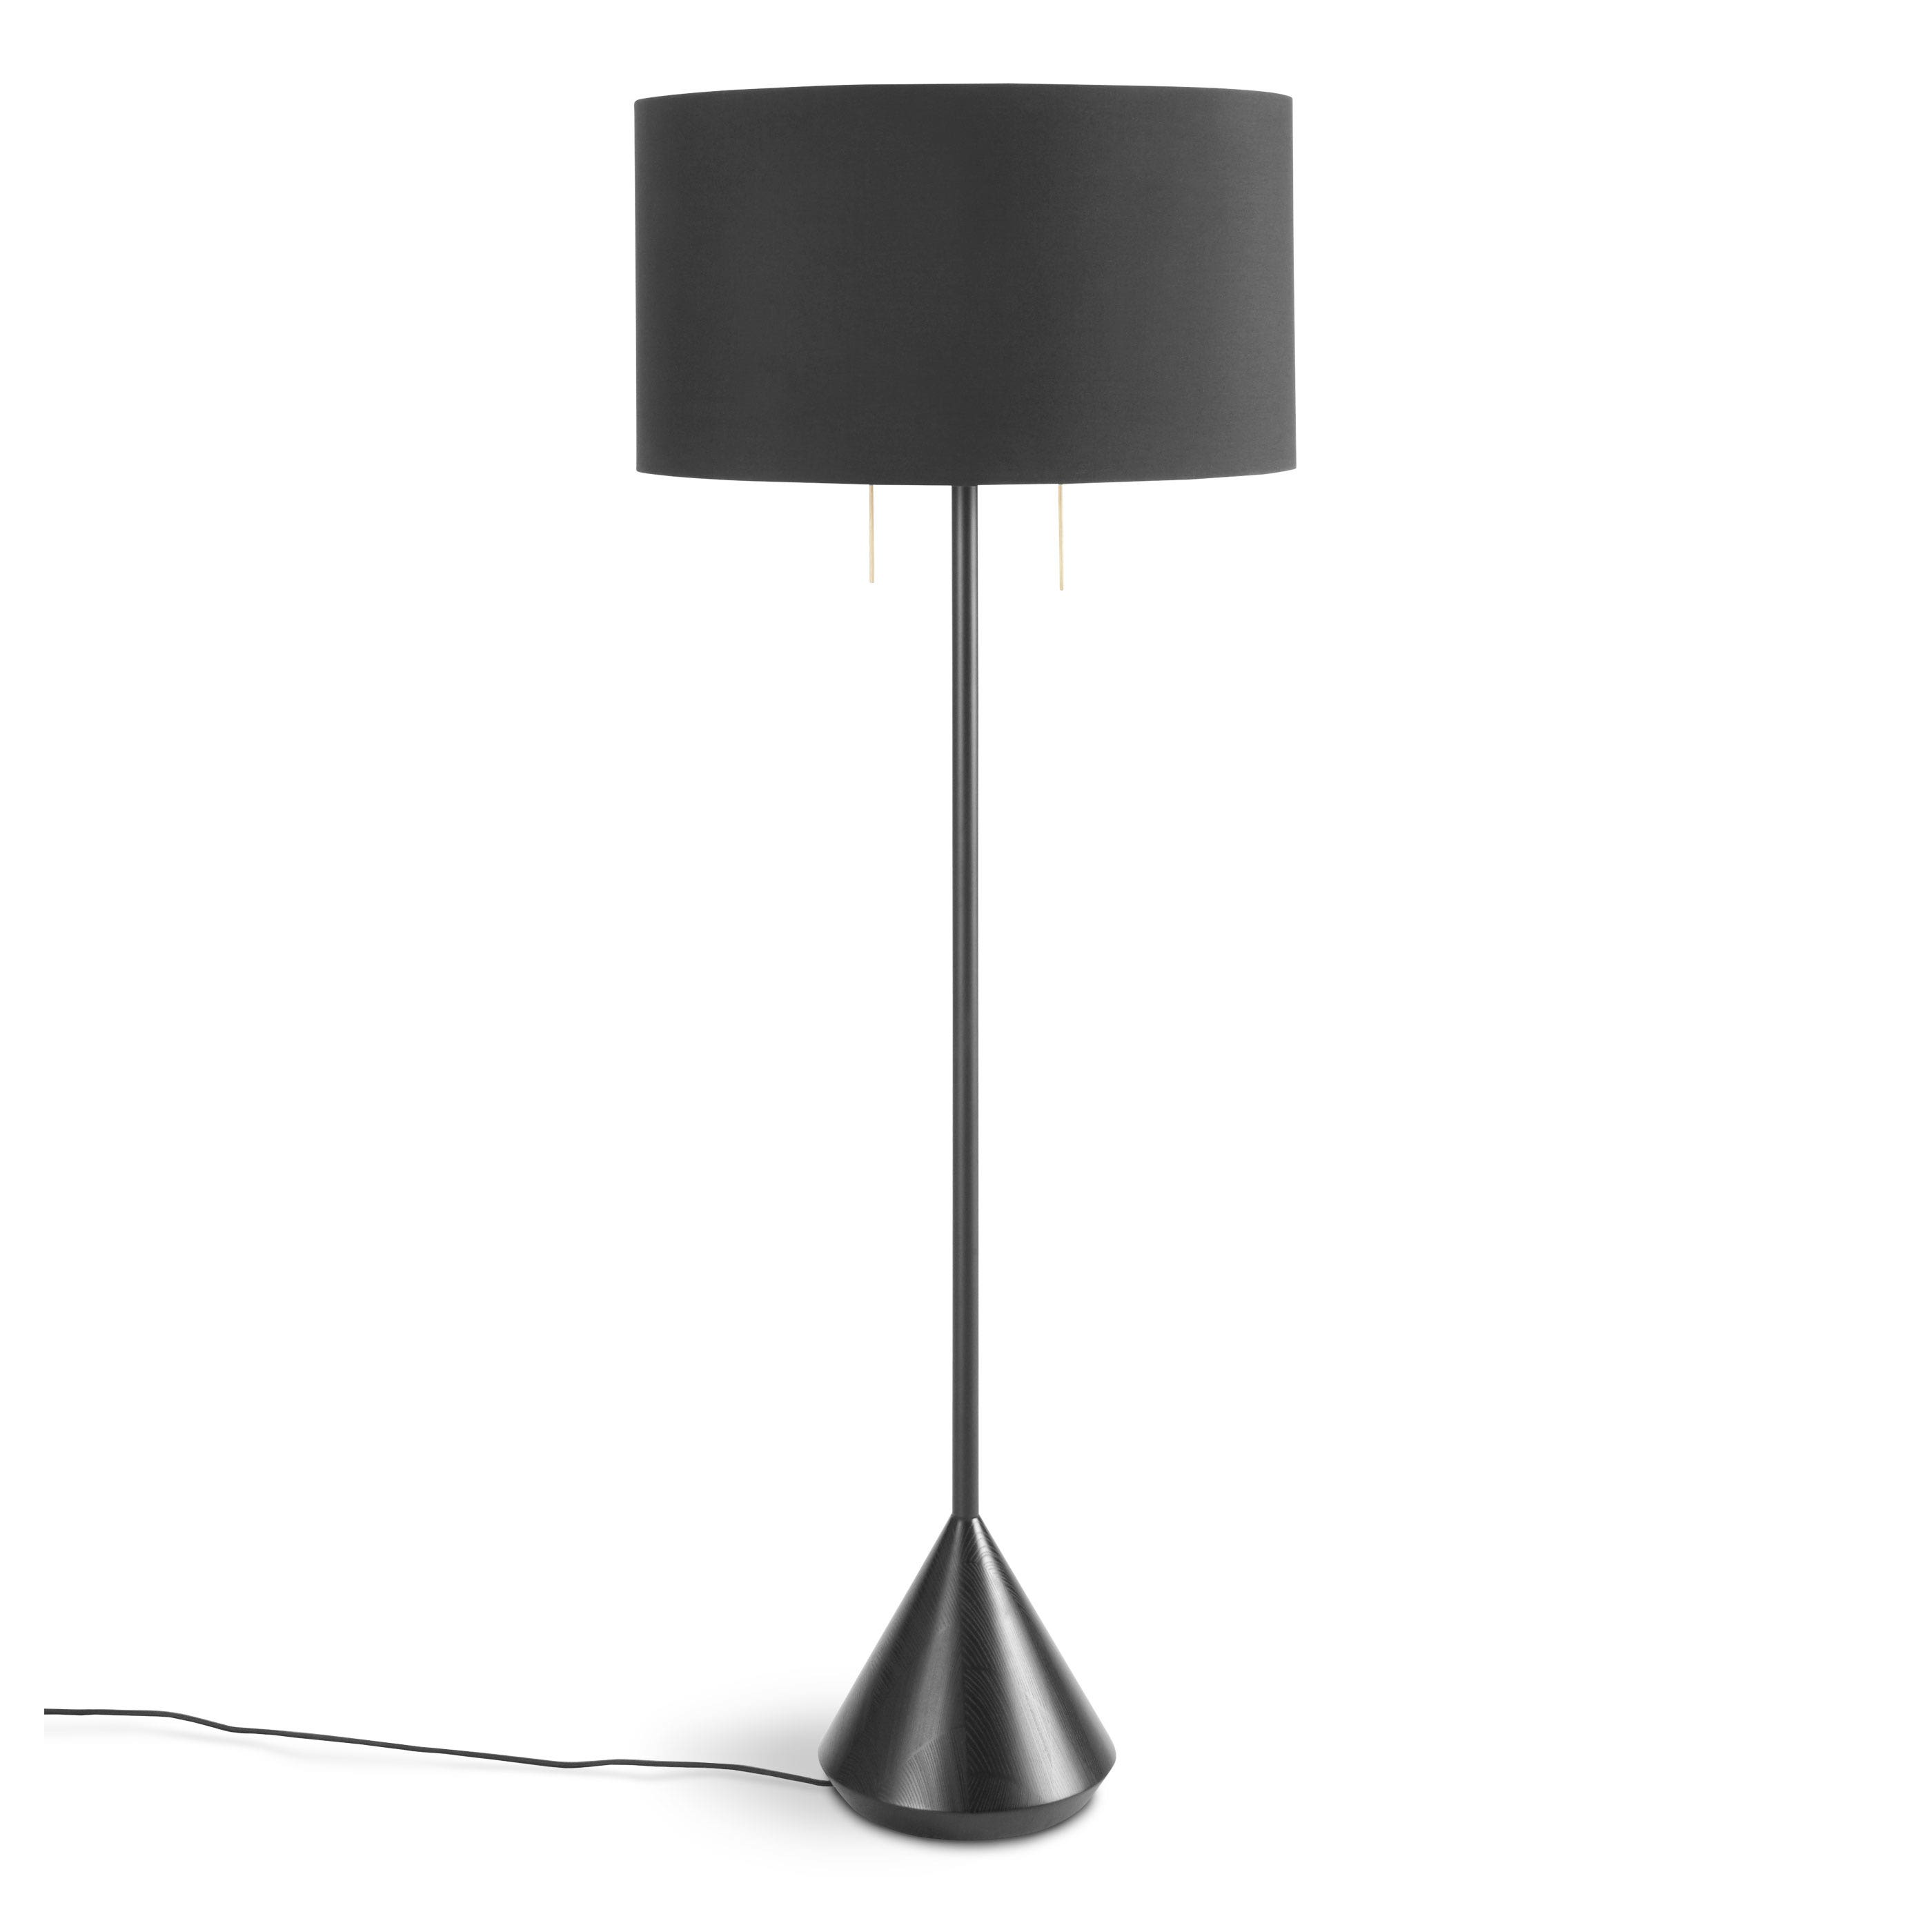 Flask floor lamp minimalist floor lamp blu dot previous image flask floor lamp black geotapseo Image collections